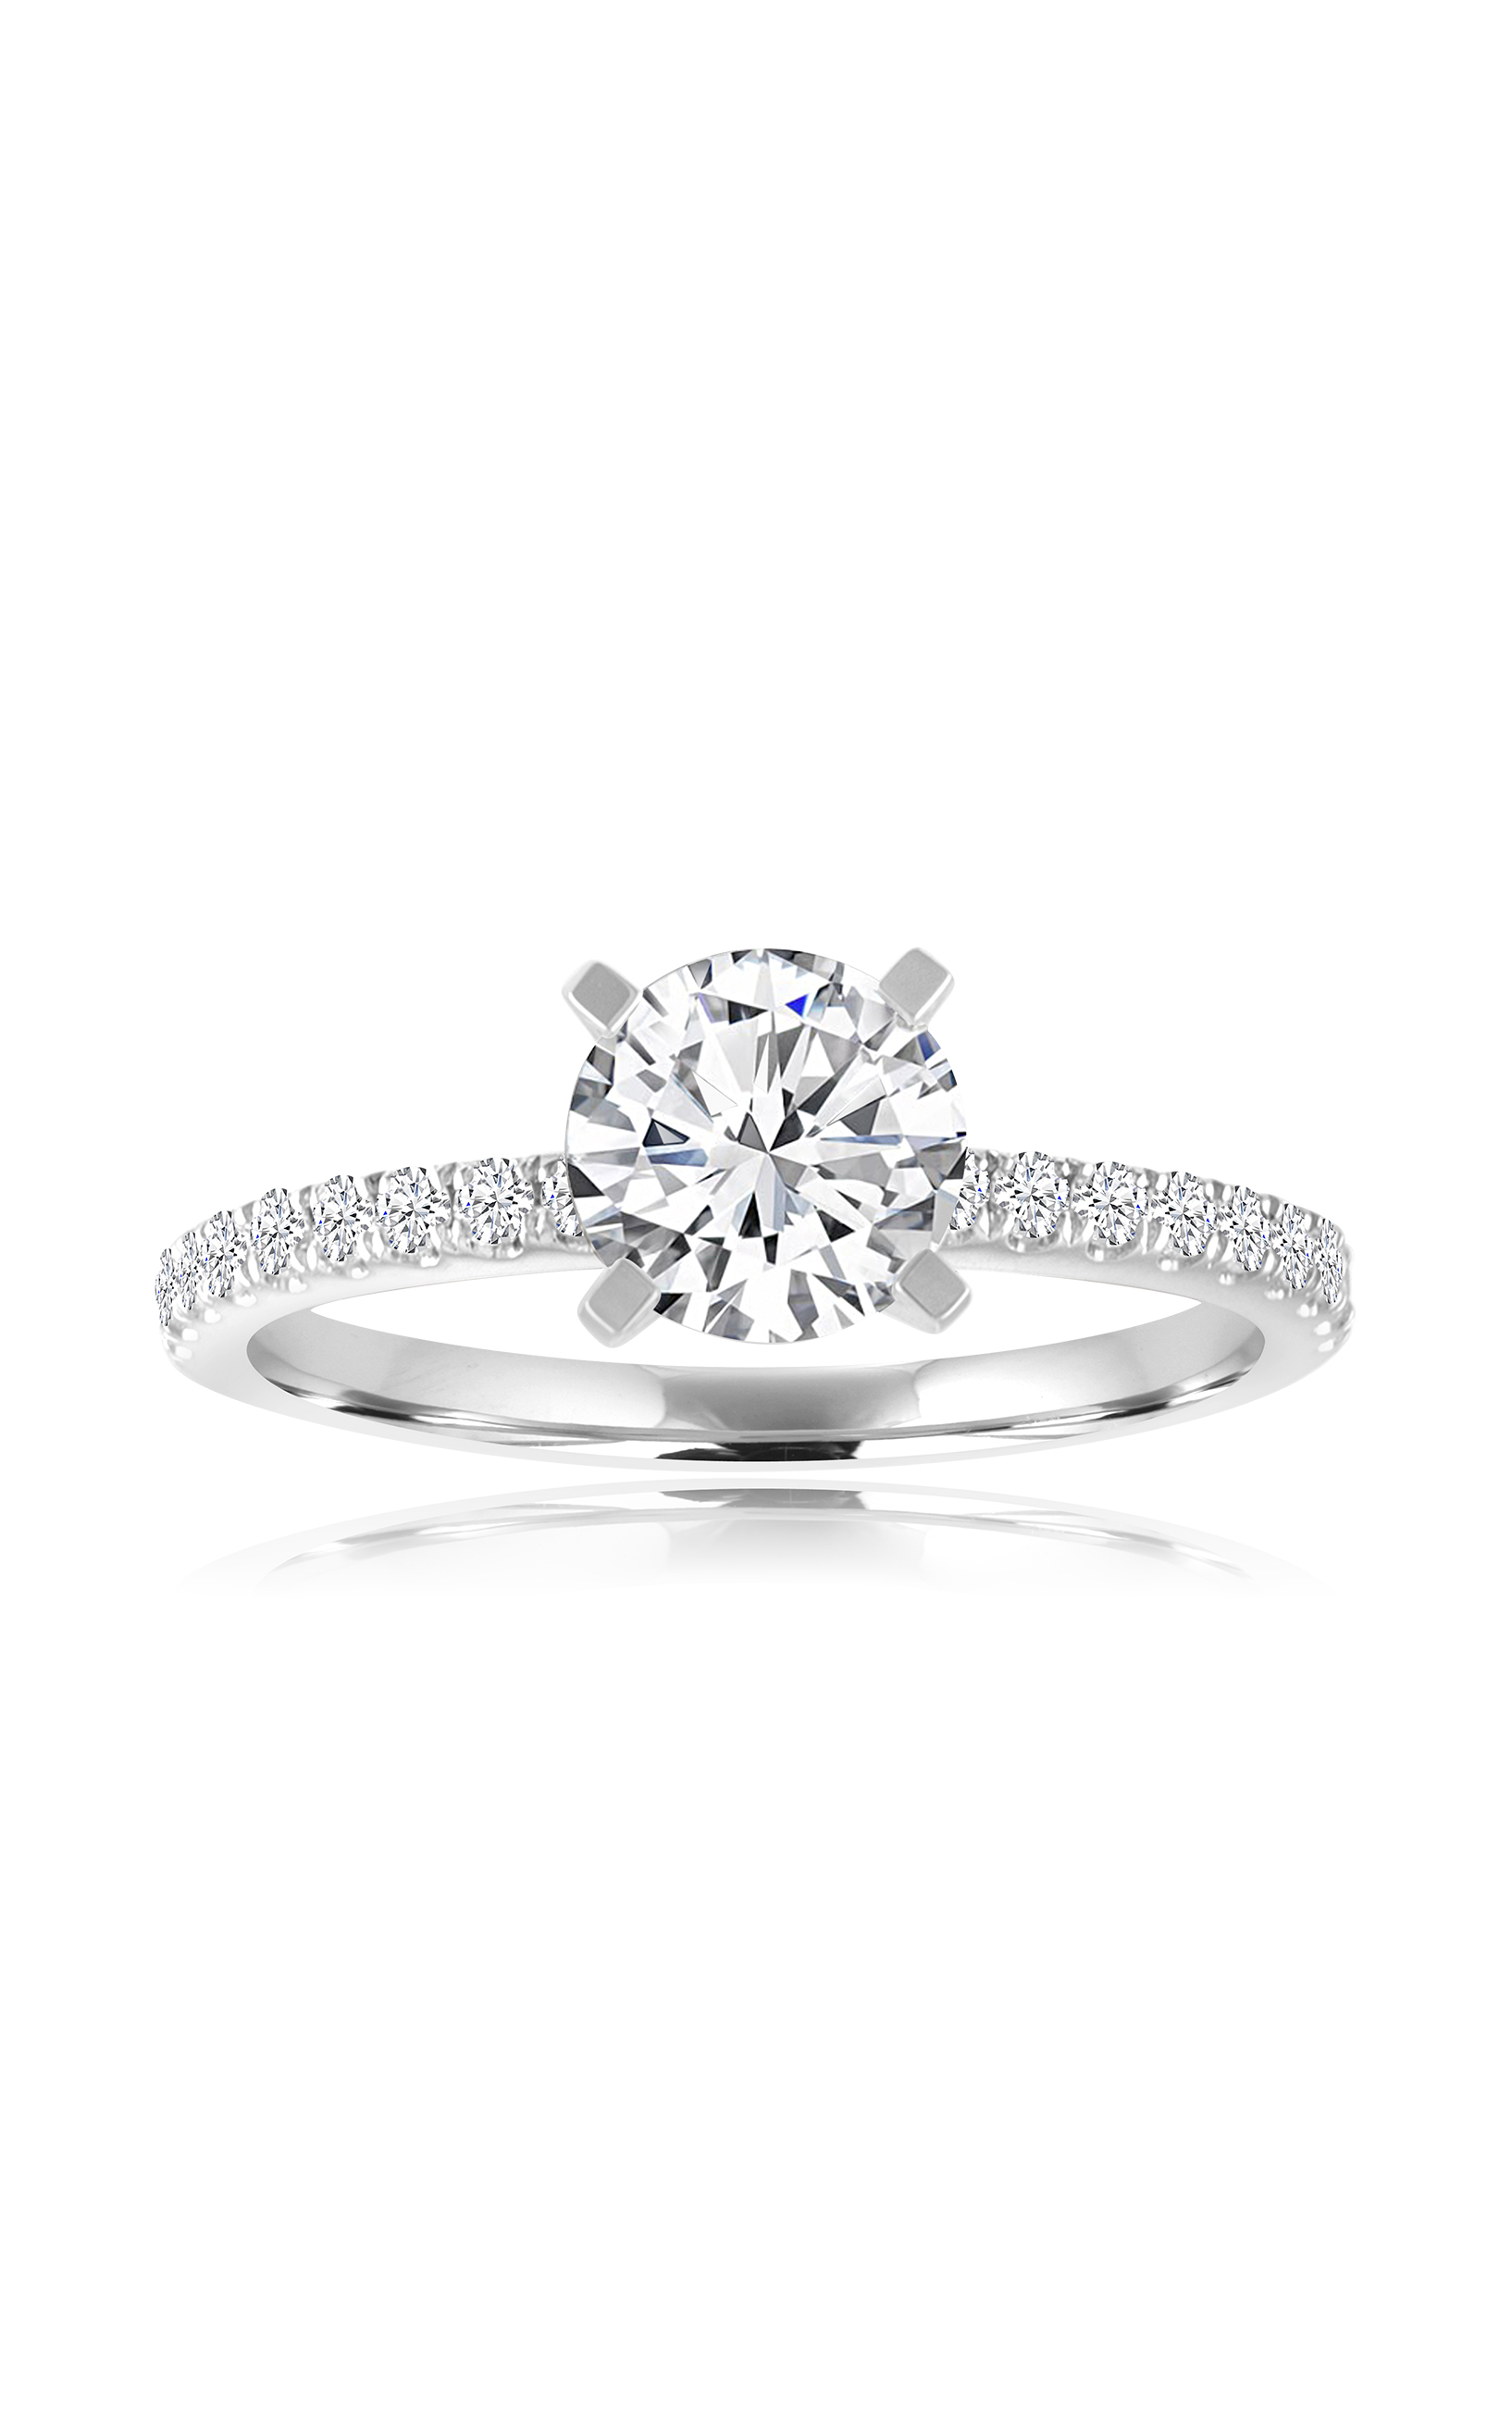 Imagine Bridal Engagement Rings 66156D-1 4 product image